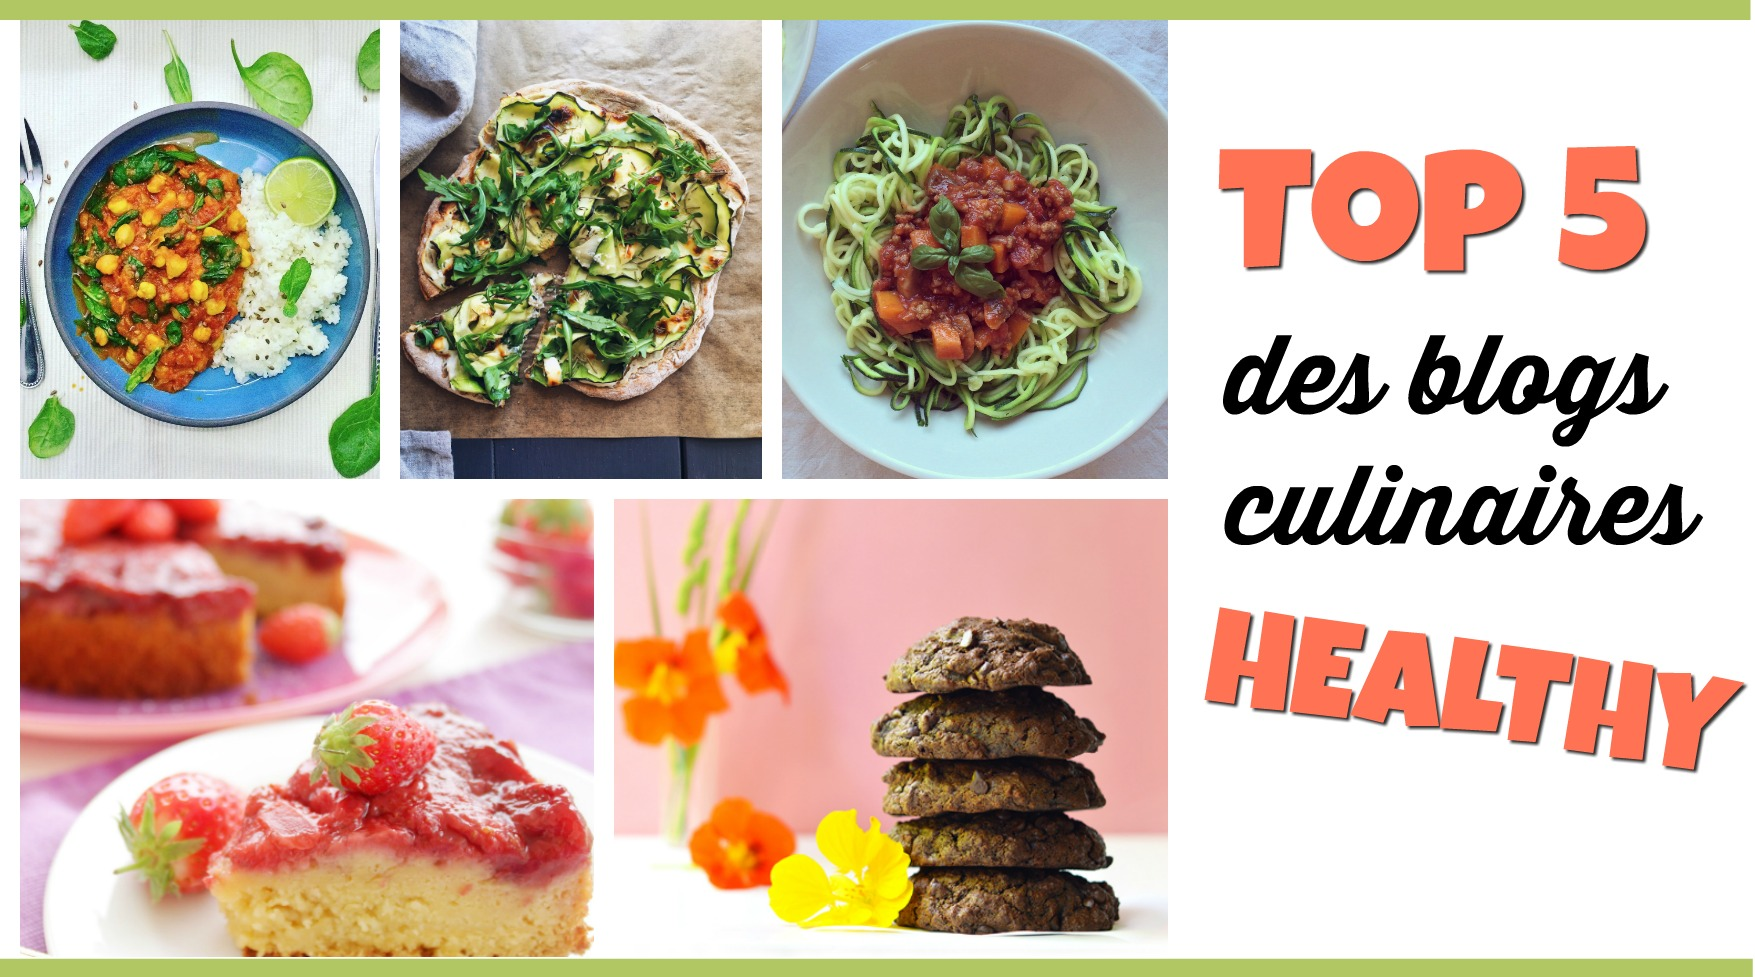 TOP 5 DES BLOGS CULINAIRES HEALTHY